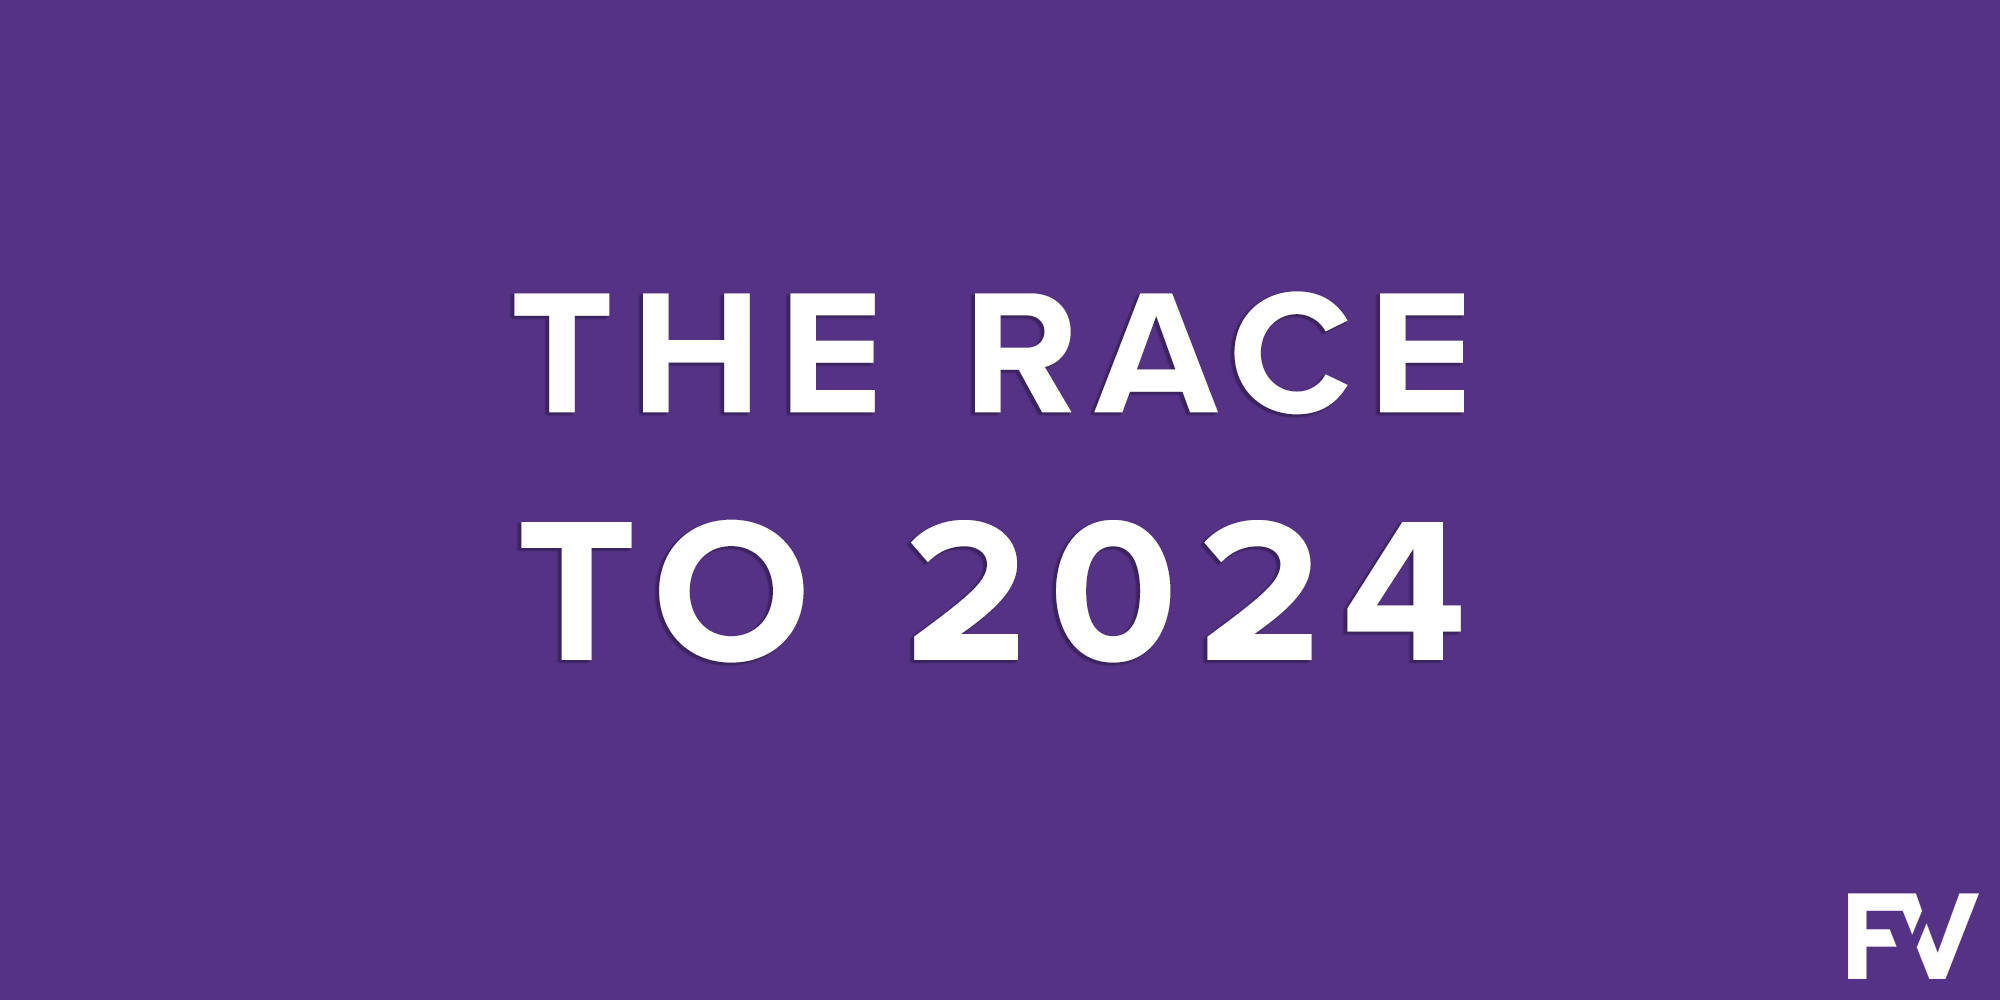 A New Ranked Choice Poll of Maine Republicans Shows the Initial Dynamics of the 2024 Presidential Race